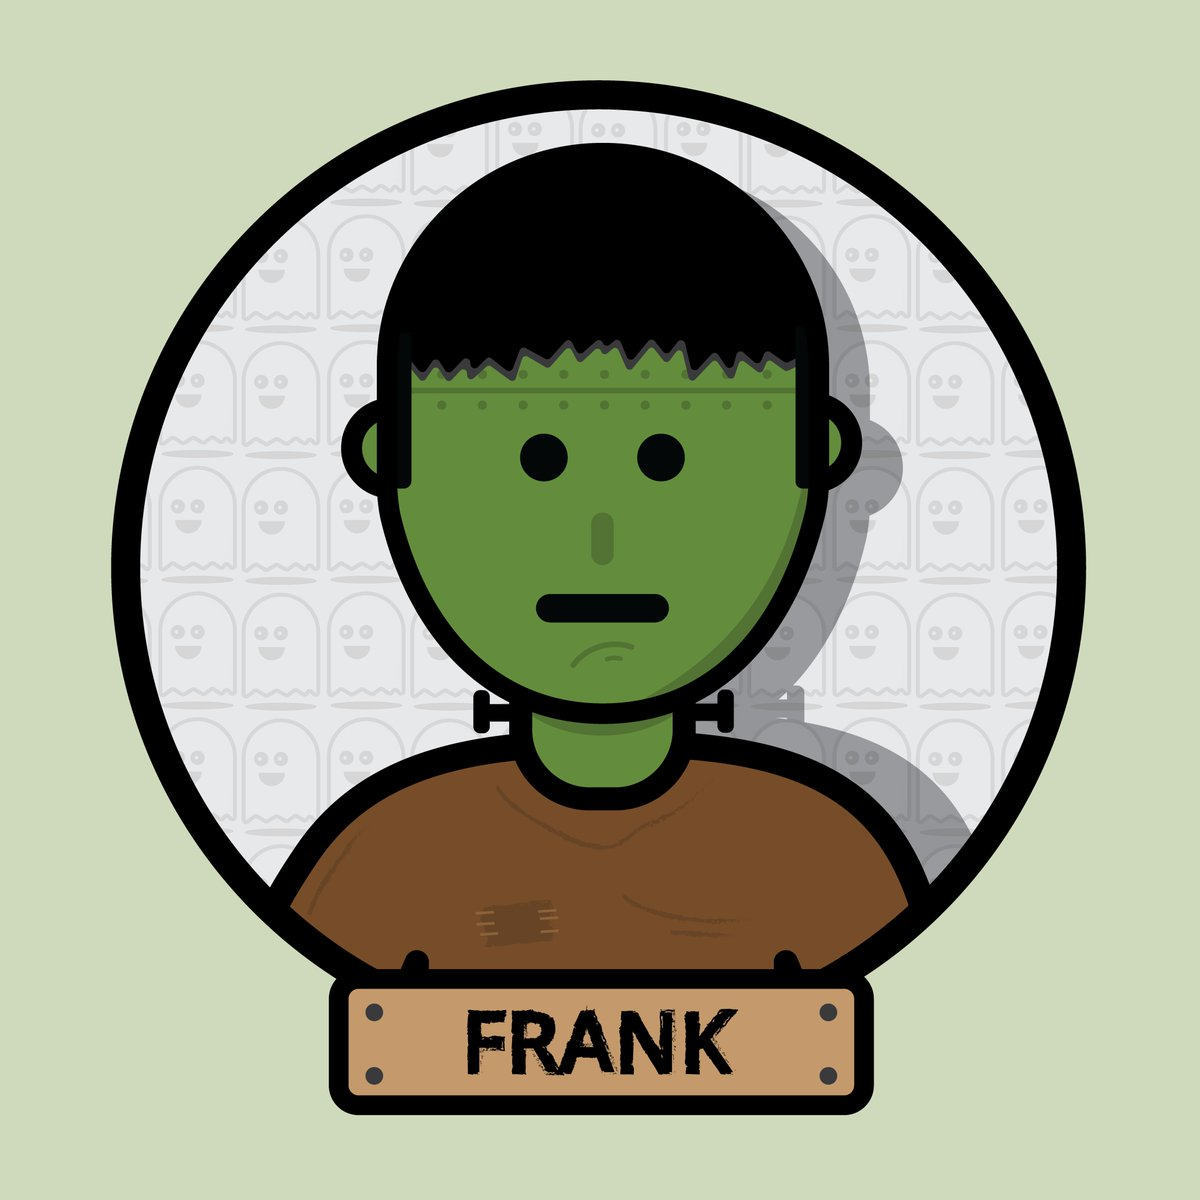 Meet Frank, a friendly monster who only gets angry when hungry. #happyhalloween #halloween #frankenstein #monsters #spooky #characterdesign  #flatvector #dailydesign #onceadaydesign #halloween2020 #october #halloweenicons #halloweenmonster #designoftheday #halloweendesign https://t.co/yu39AyTbs0